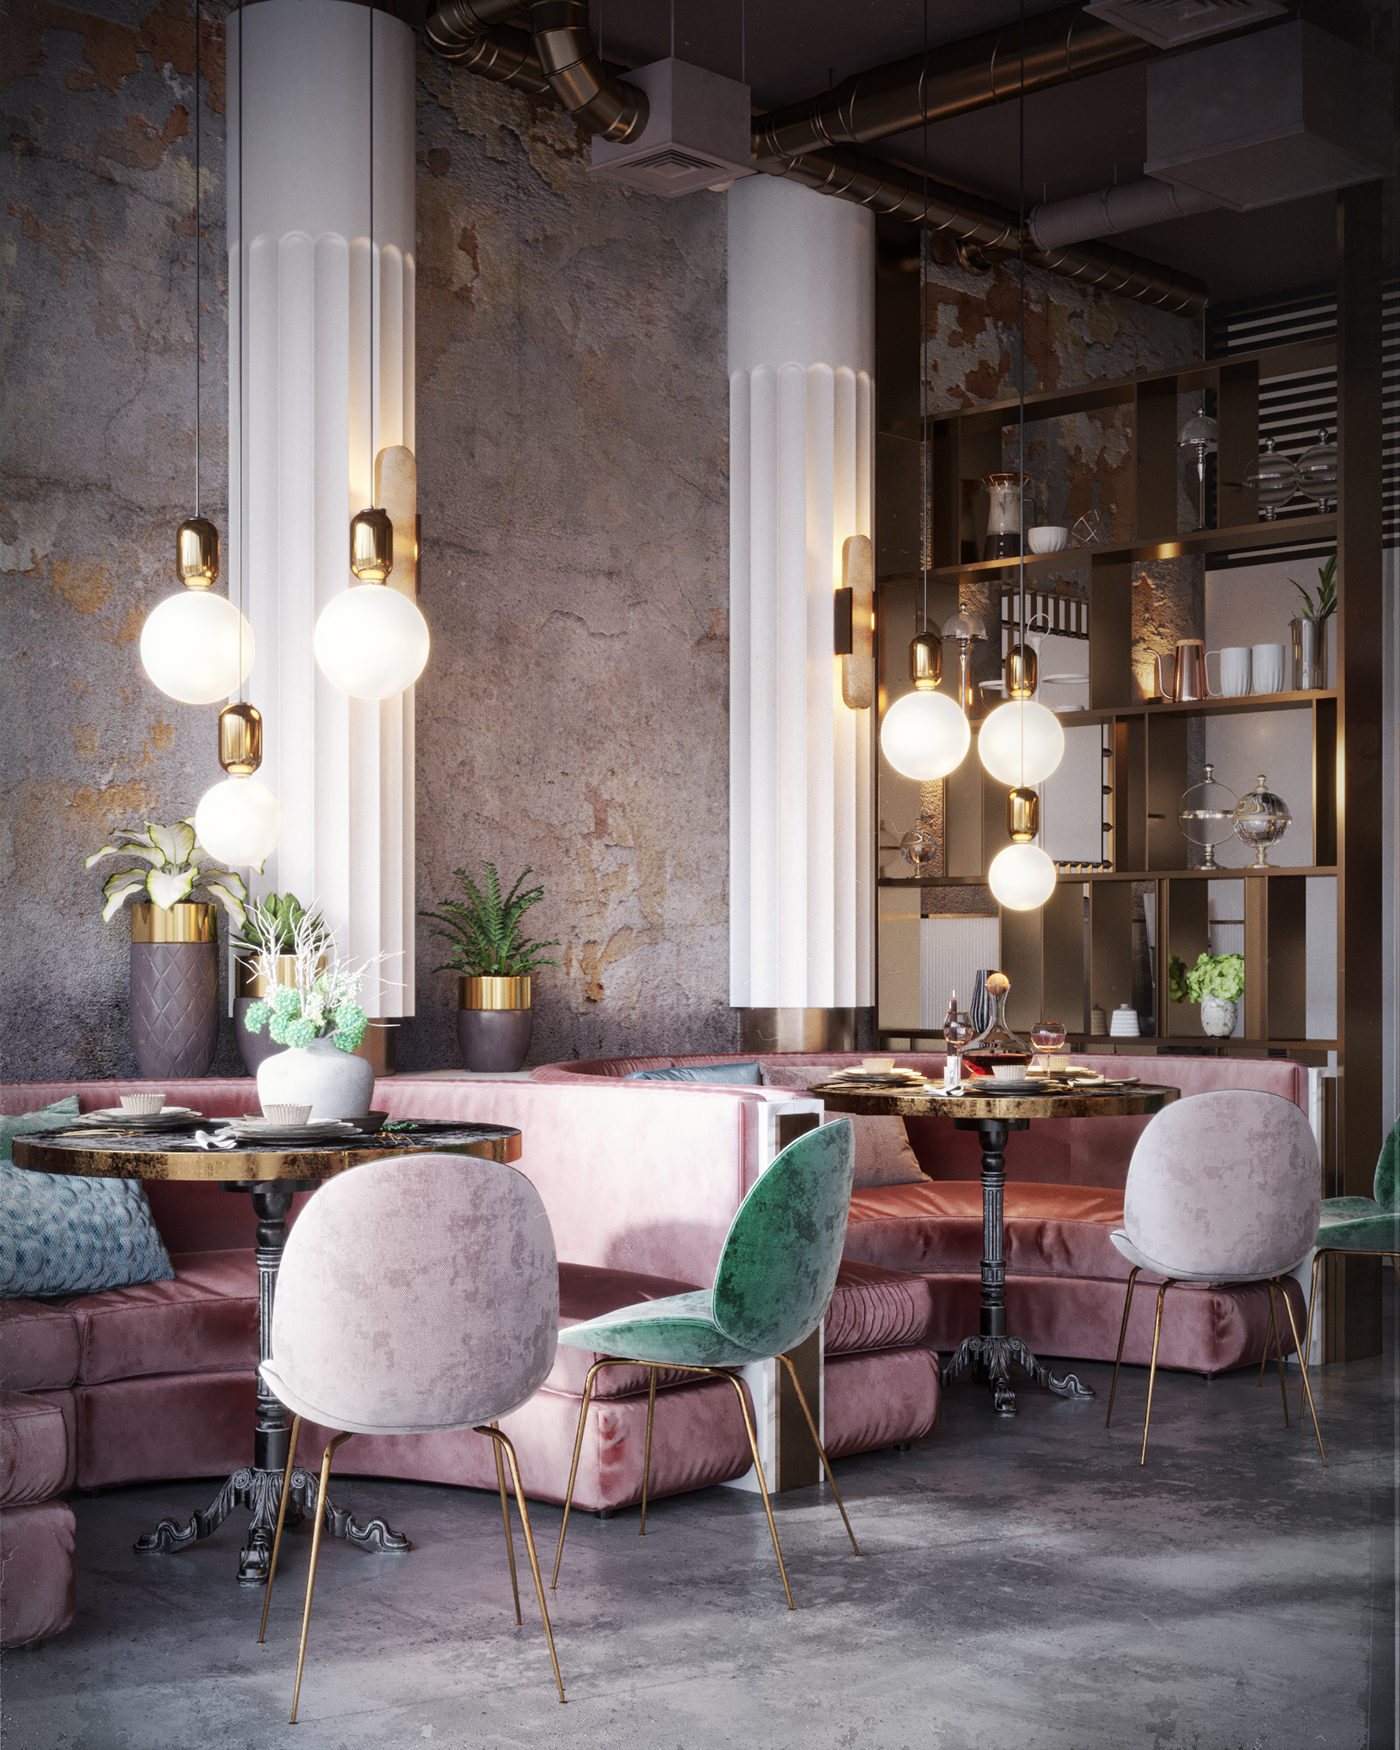 Pink Interiors - In Honor of Breast Cancer Awareness Month - Maxim Tsiabus restaurant №2 rendering - pink and green interiors - restaurant designs